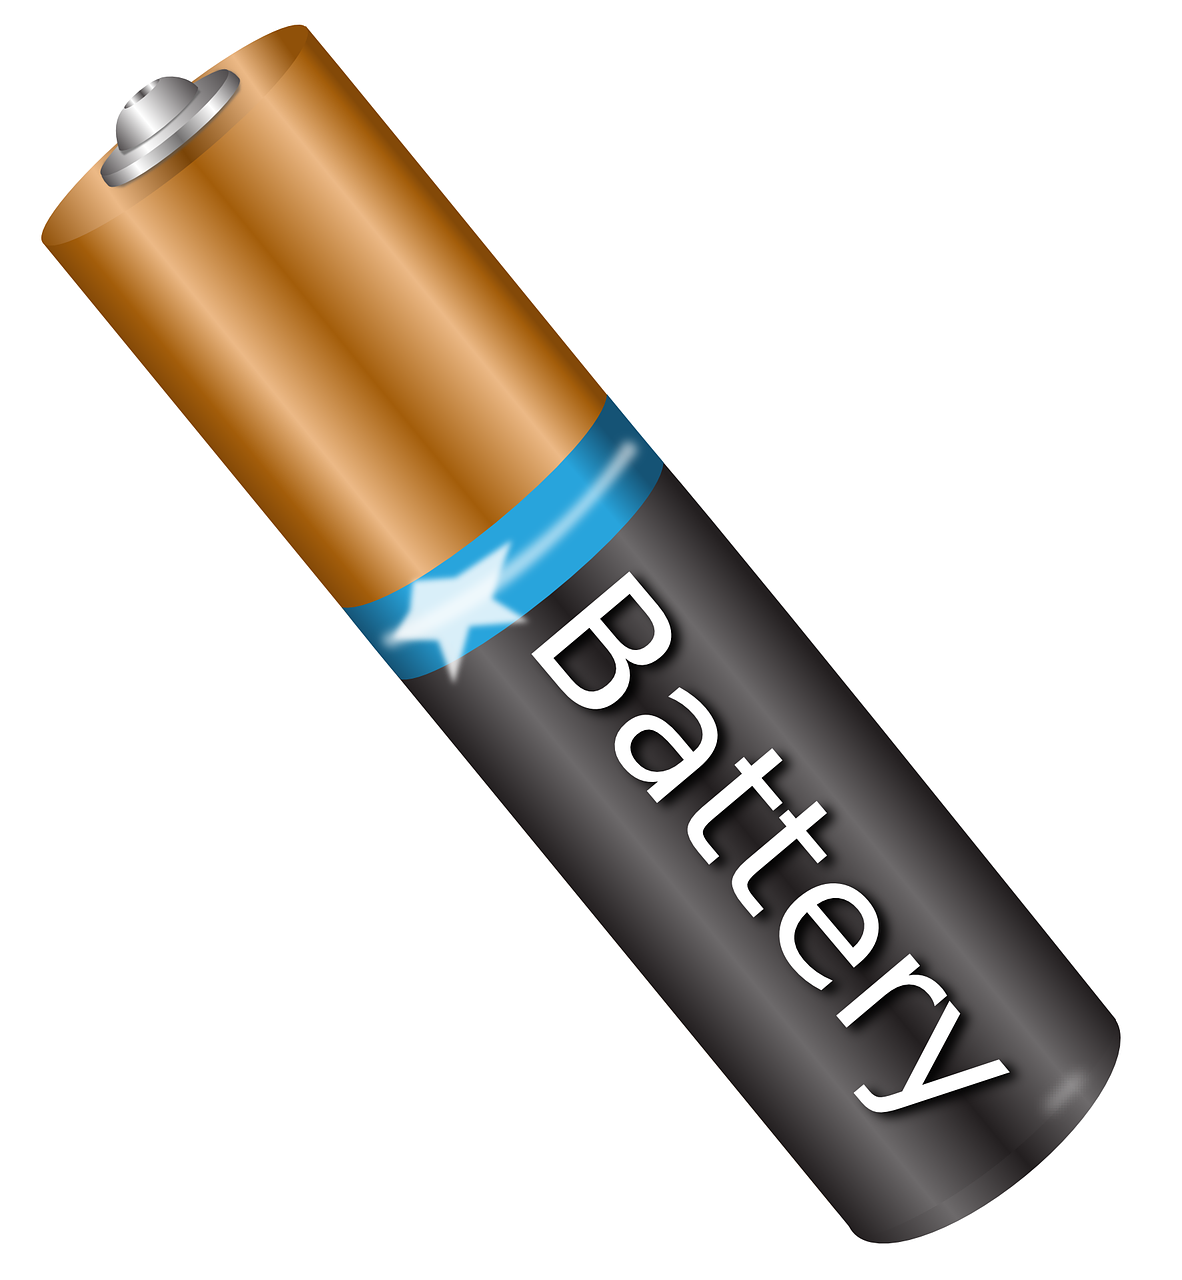 facts about batteries Battery facts & myths faq #1 tip - my new battery doesn't indicate full charge new batteries will not reach their full capacity until they have gone through 3-4 complete charge/discharge cycles.